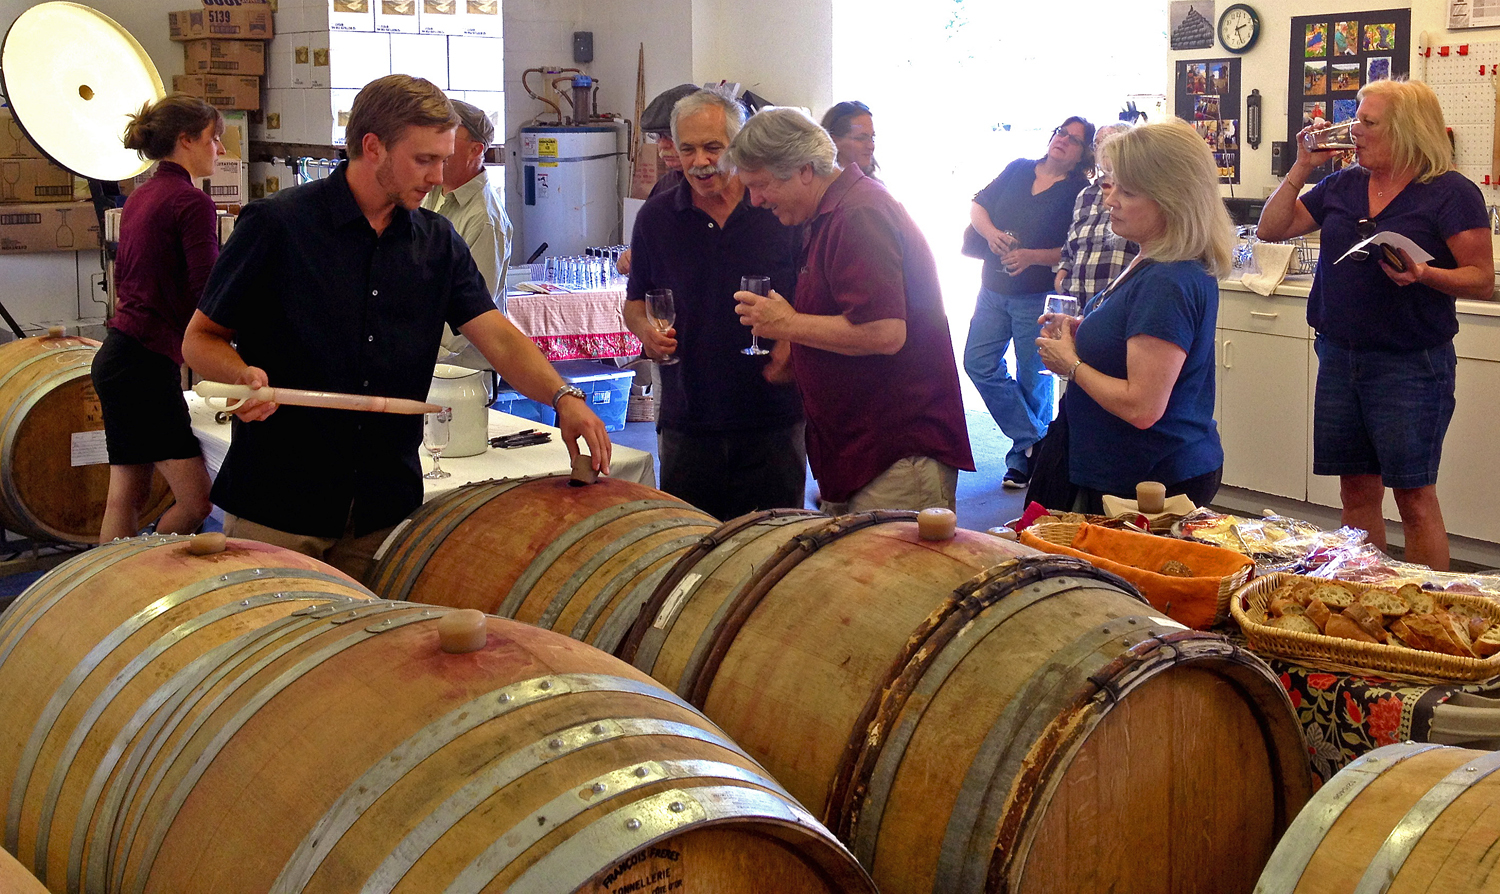 Whitethorn Winery, shown during a tasting last year, will support Sanctuary Forest's Mattole restoration work with another Memorial Day tasting event this Saturday and Sunday from 1-5 p.m. (Photo courtesy of Whitethorn Winery)